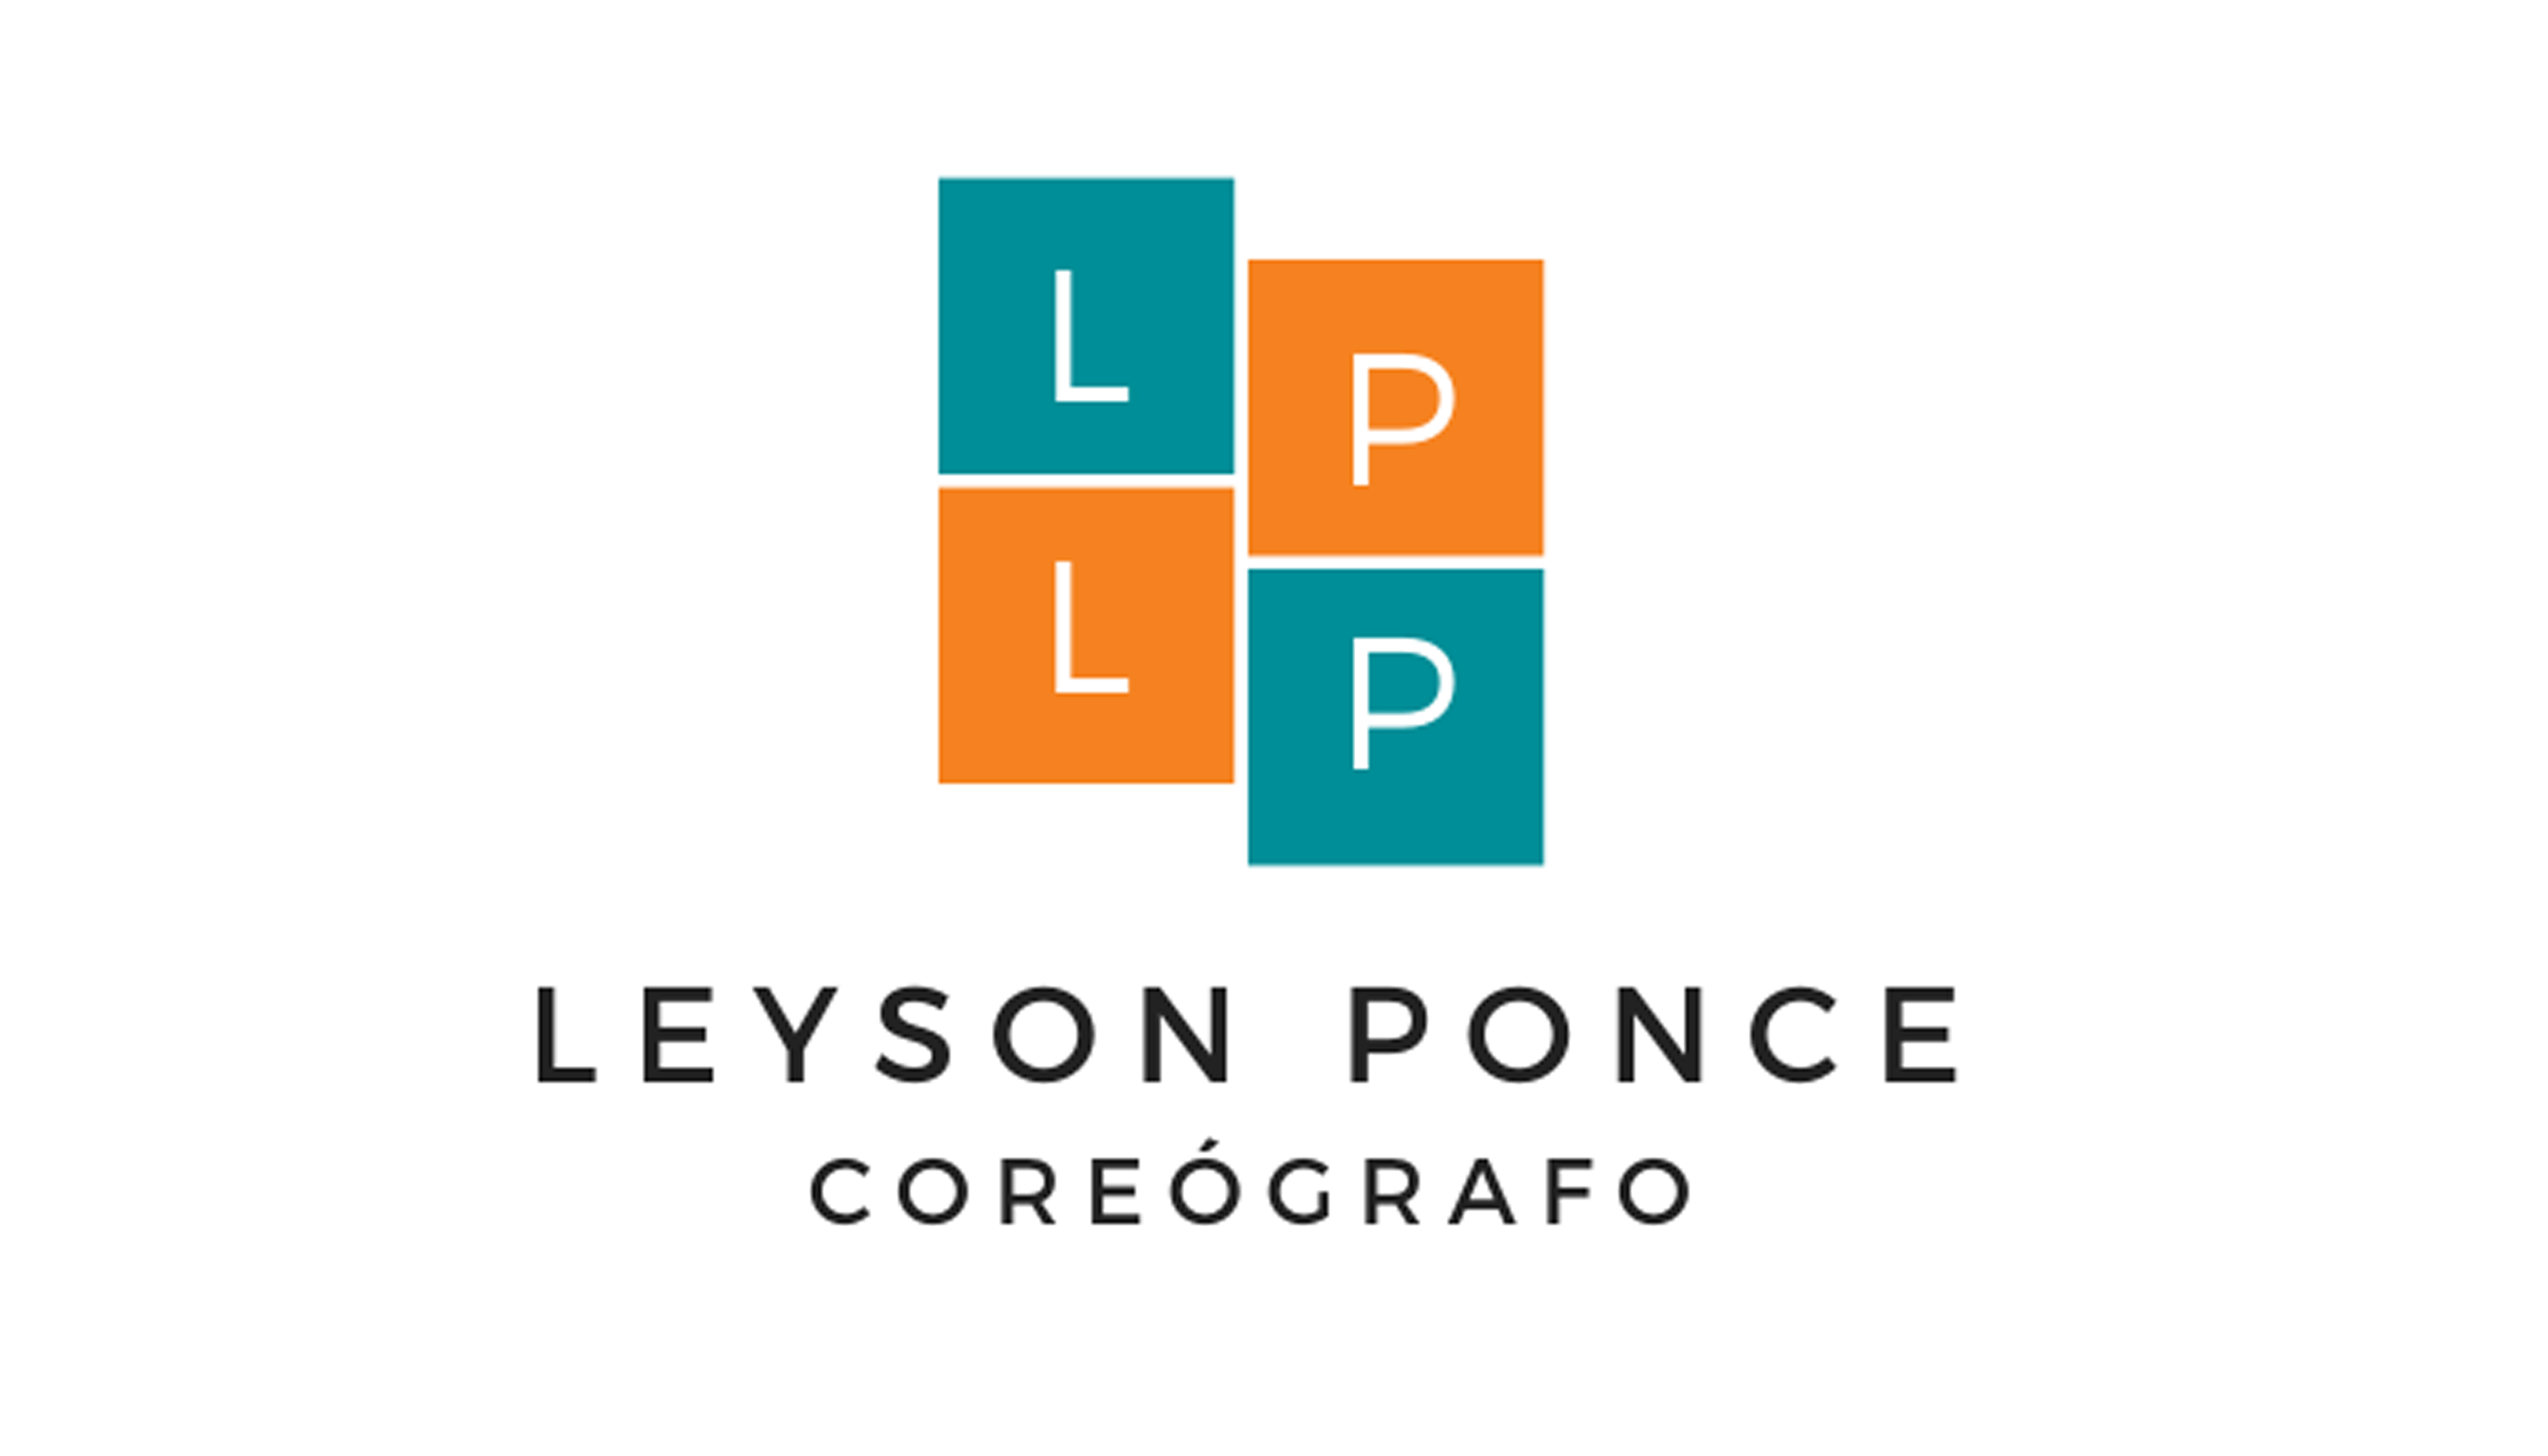 Leyson Ponce